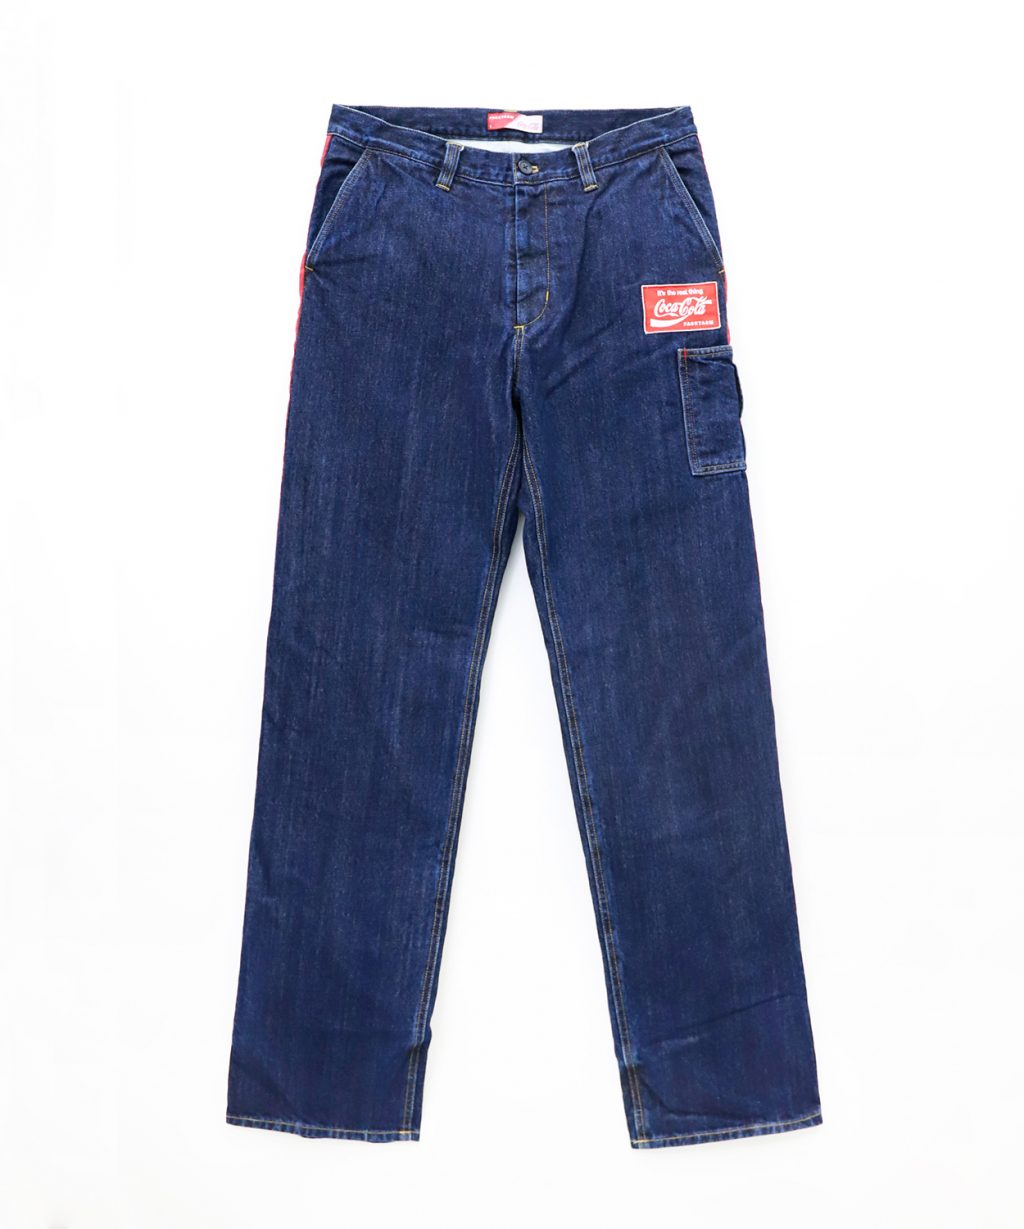 COCA-COLA-DENIM-PANTS-indigo1-1024x1229.jpg